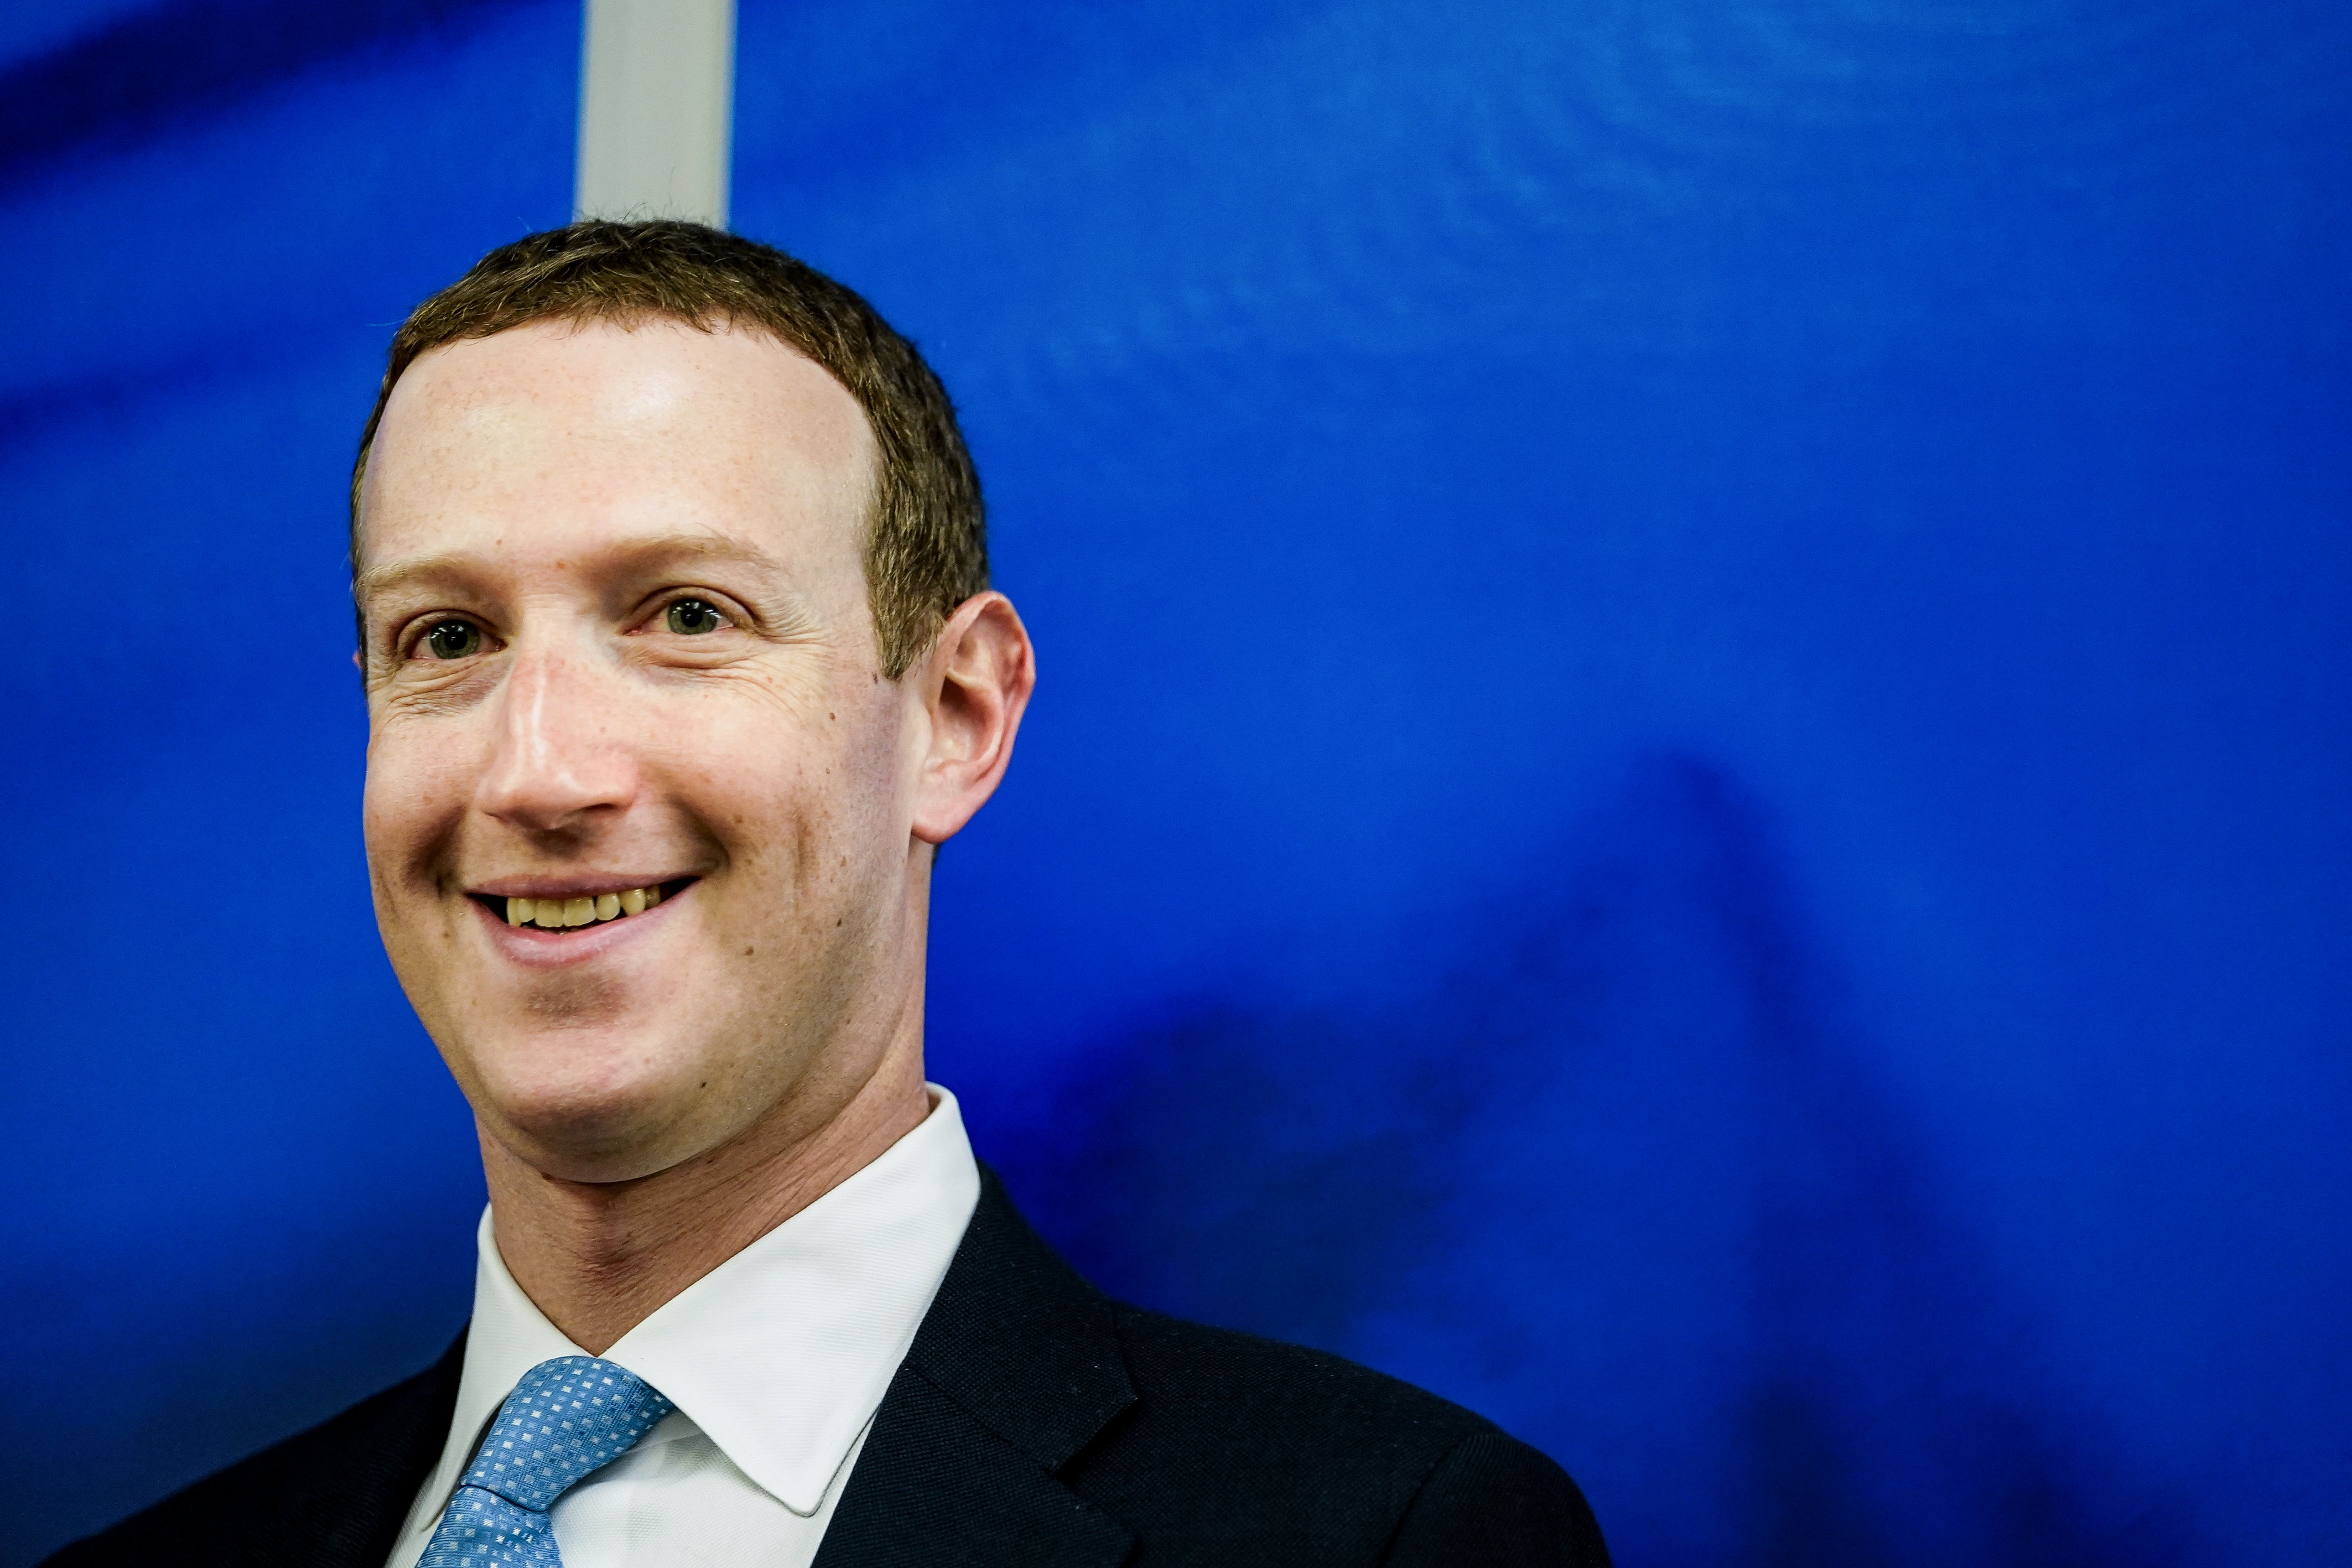 Founder and CEO of US online social media and social networking service Facebook Mark Zuckerberg reacts upon his arrival for a meeting with European Commission vice-president in charge for Values and Transparency, in Brussels, on February 17, 2020. (KENZO TRIBOUILLARD/AFP via Getty Images)